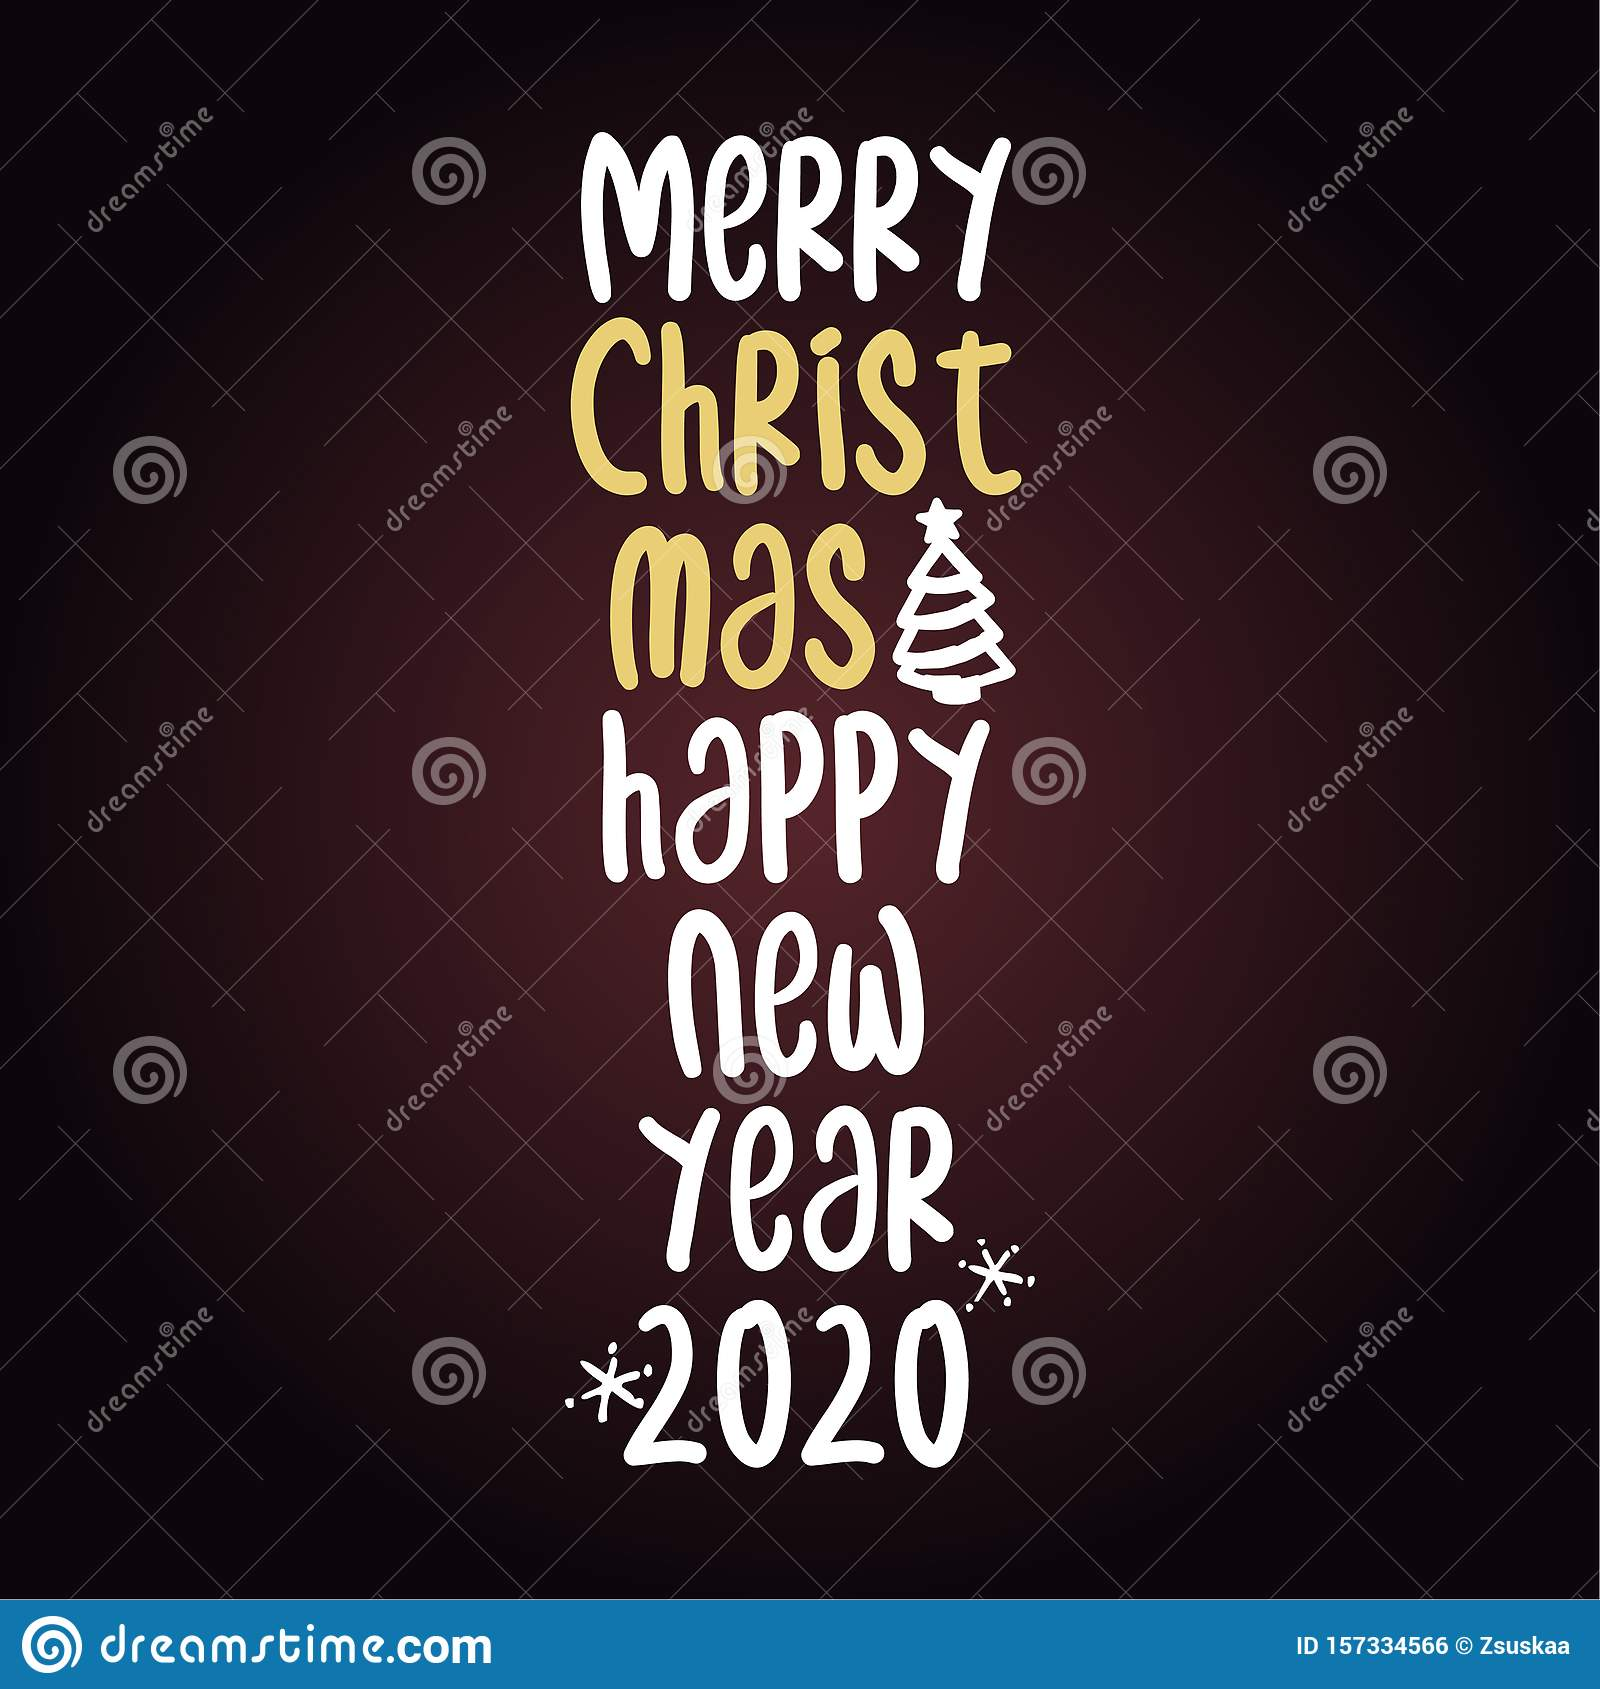 Merry Christmas and happy new year - Calligraphy phrase.